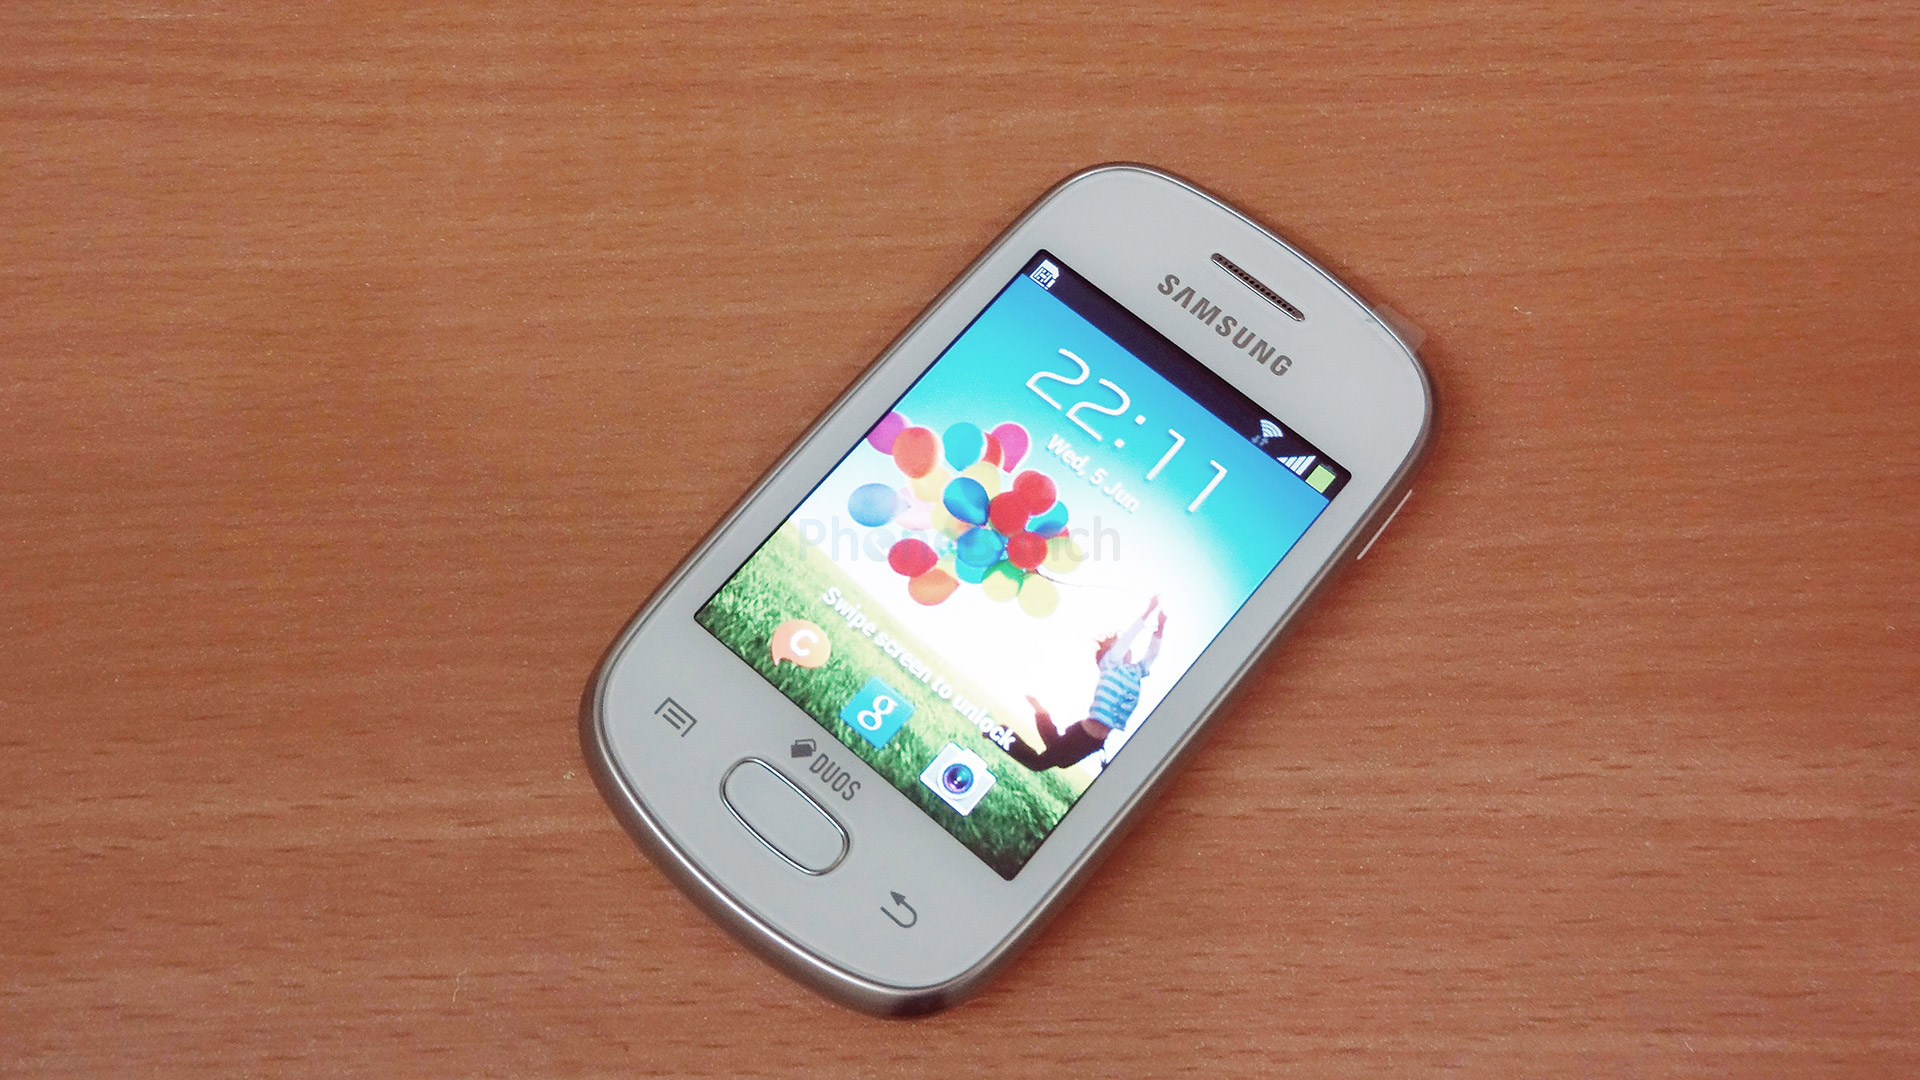 samsung galaxy star s5282 - photo #6